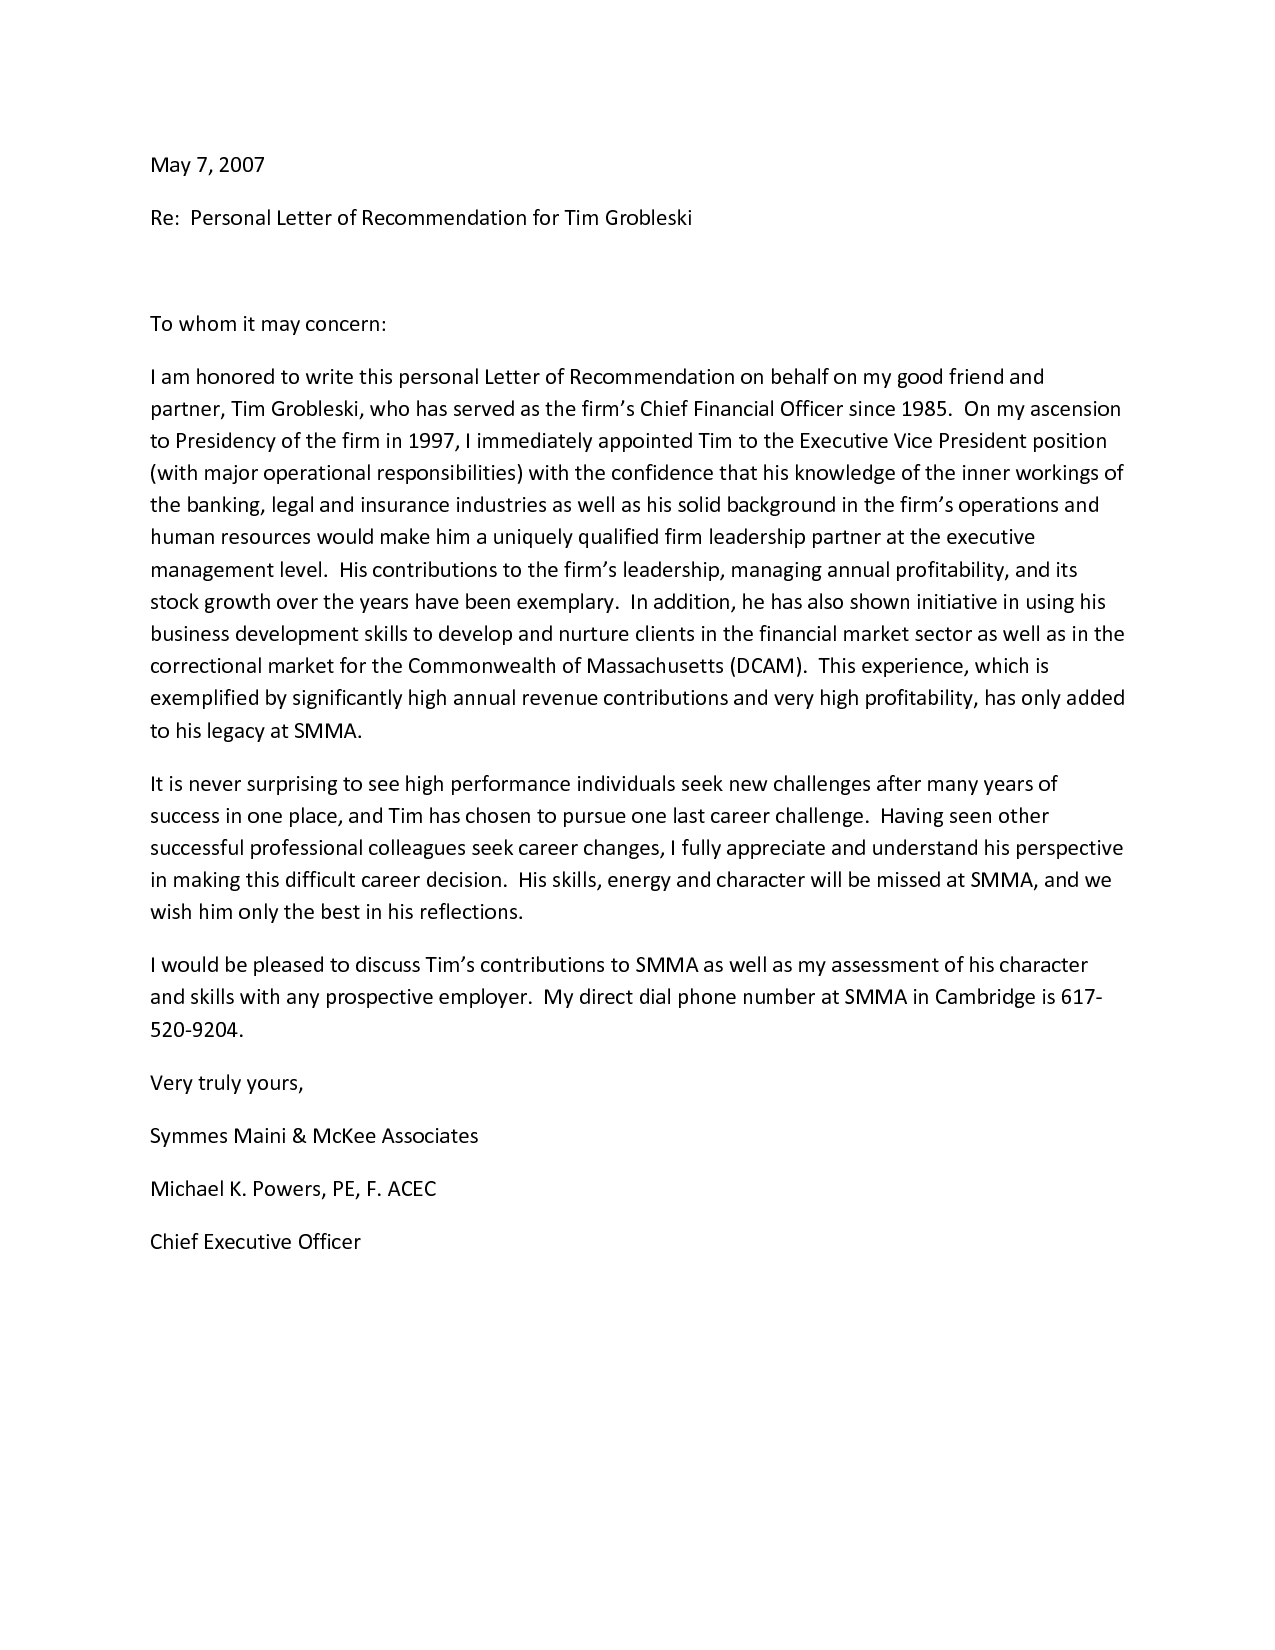 Recommendation letter for a friend template seeabruzzopersonal recommendation letter for a friend template seeabruzzopersonal recommendation letter cover letter examples spiritdancerdesigns